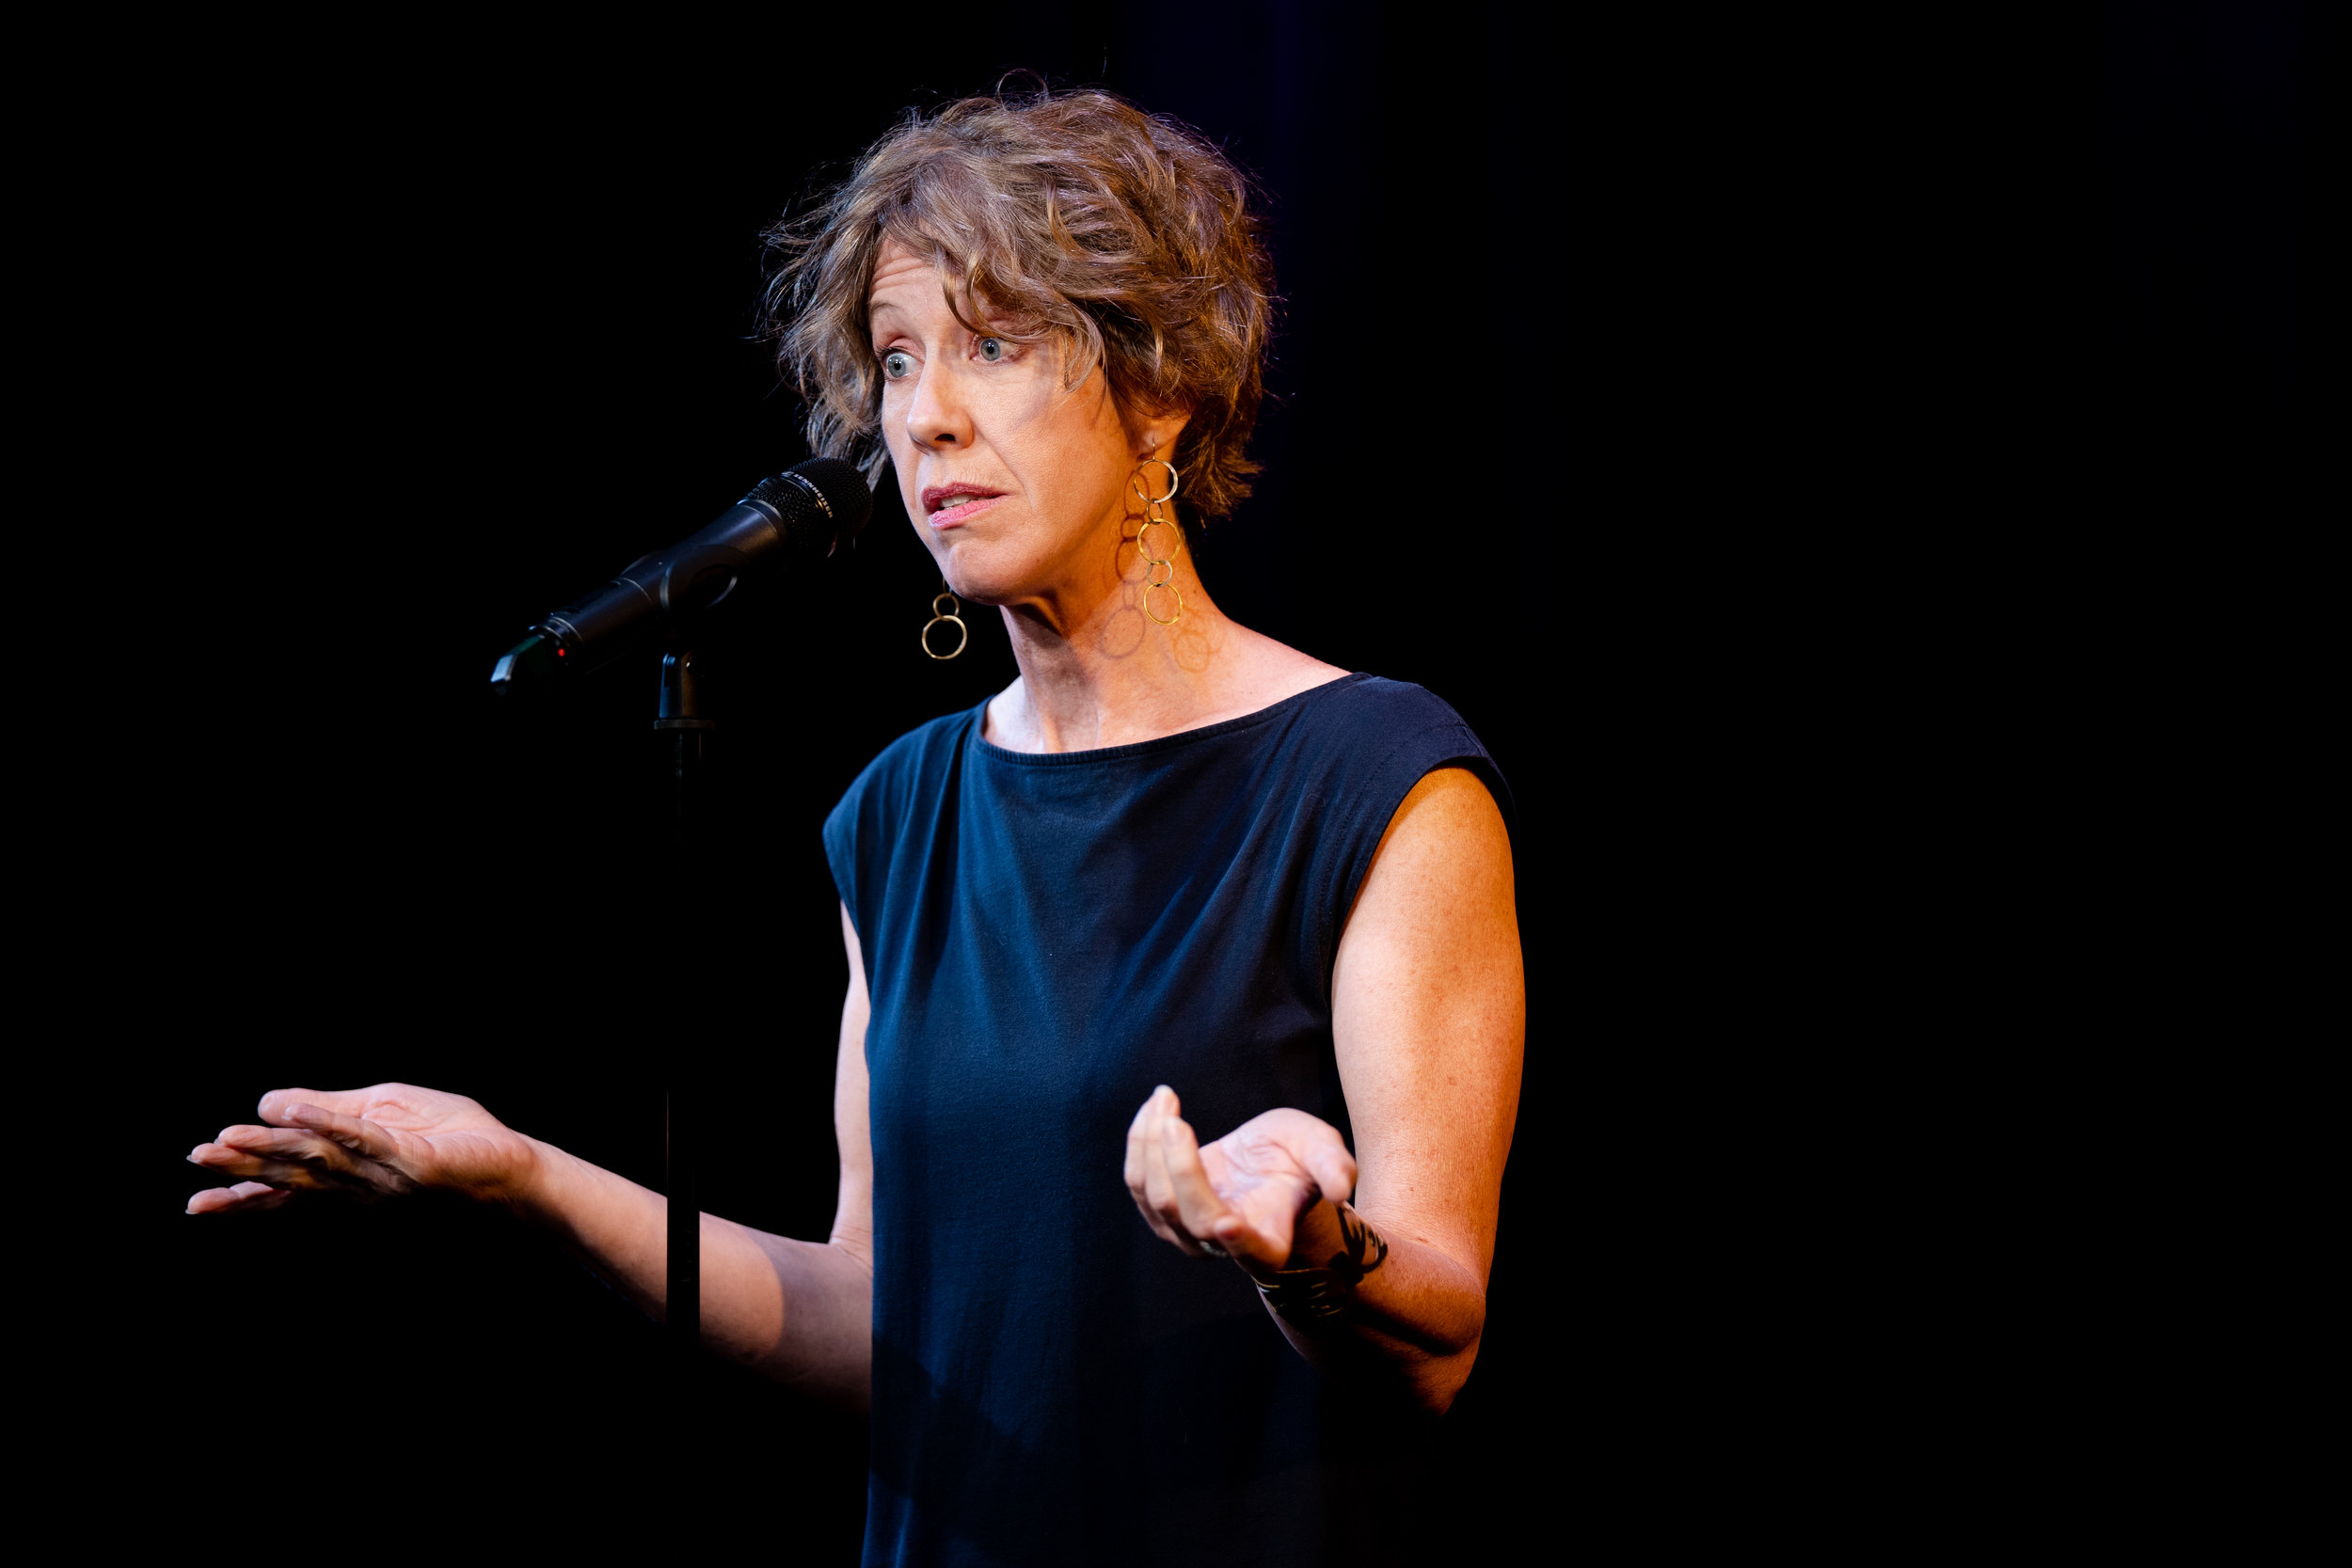 Tracy Rowland shares her story at Caveat in New York City in September 2018. Photo by Zhen Qin.